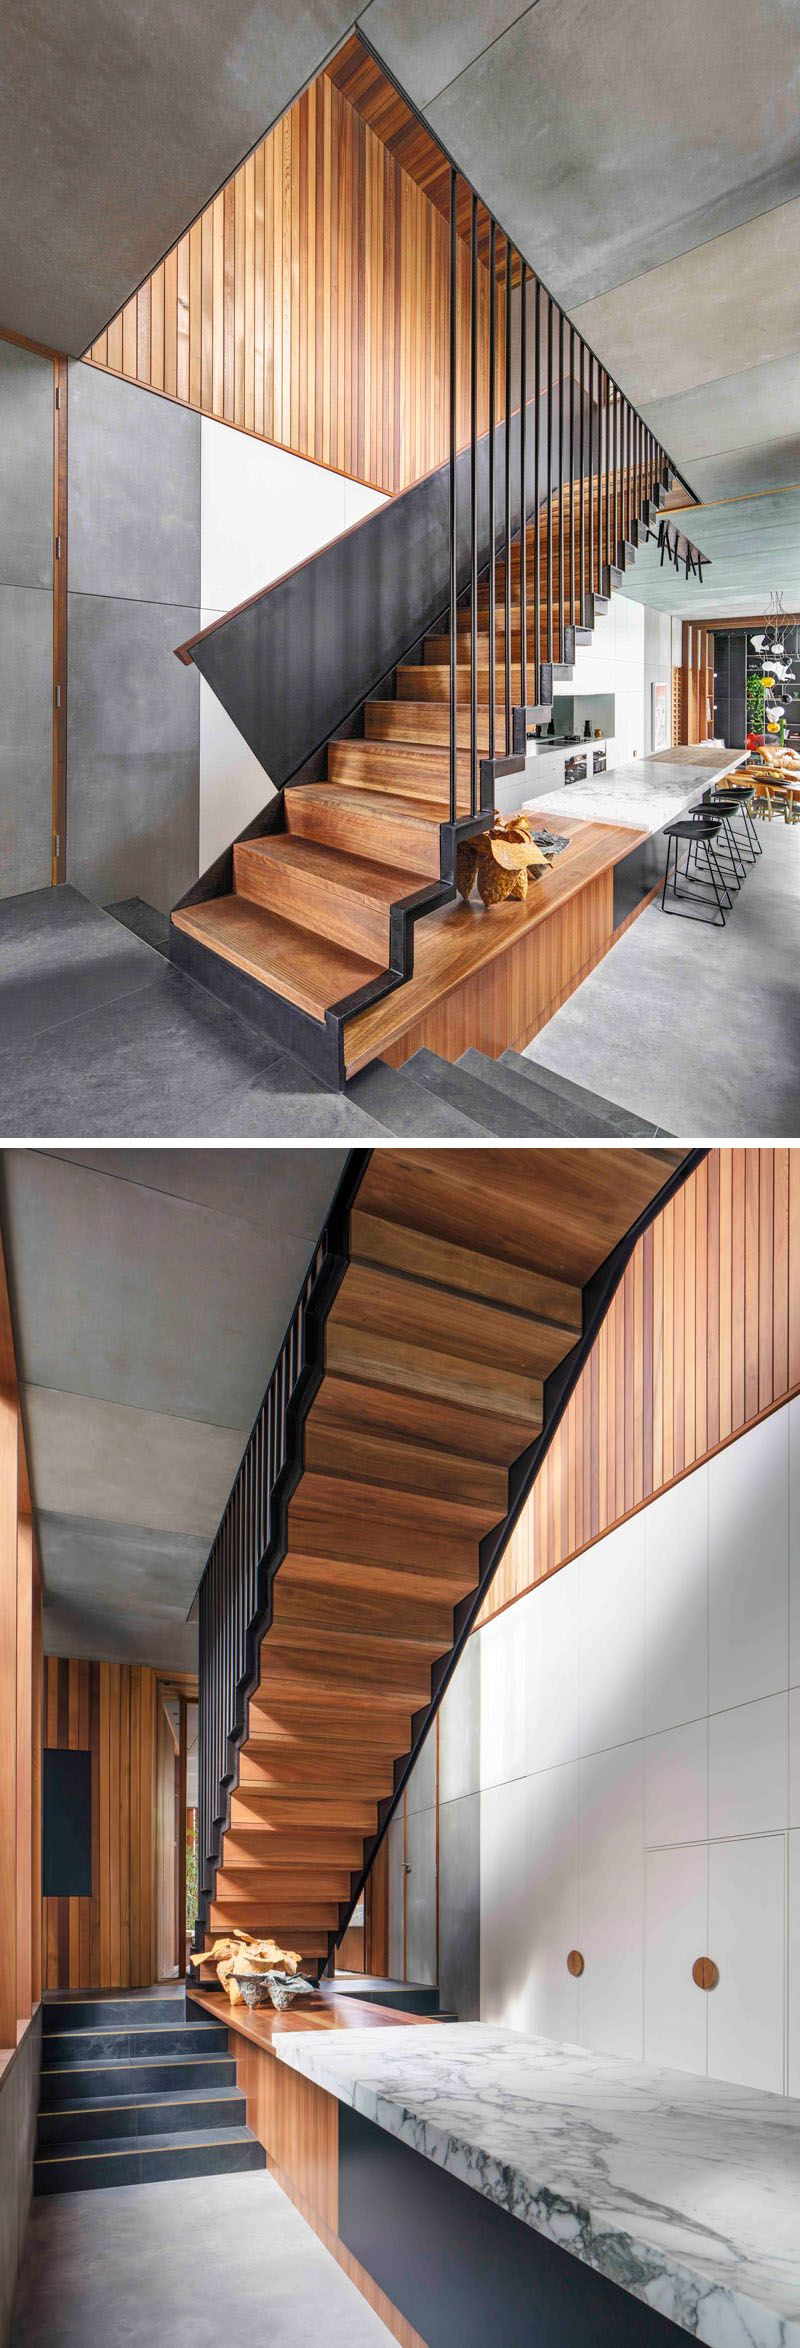 This New House Was Surrounded With Screens To Filter The Light And Create  Privacy. Staircase DesignHouse Stairs DesignInterior ...